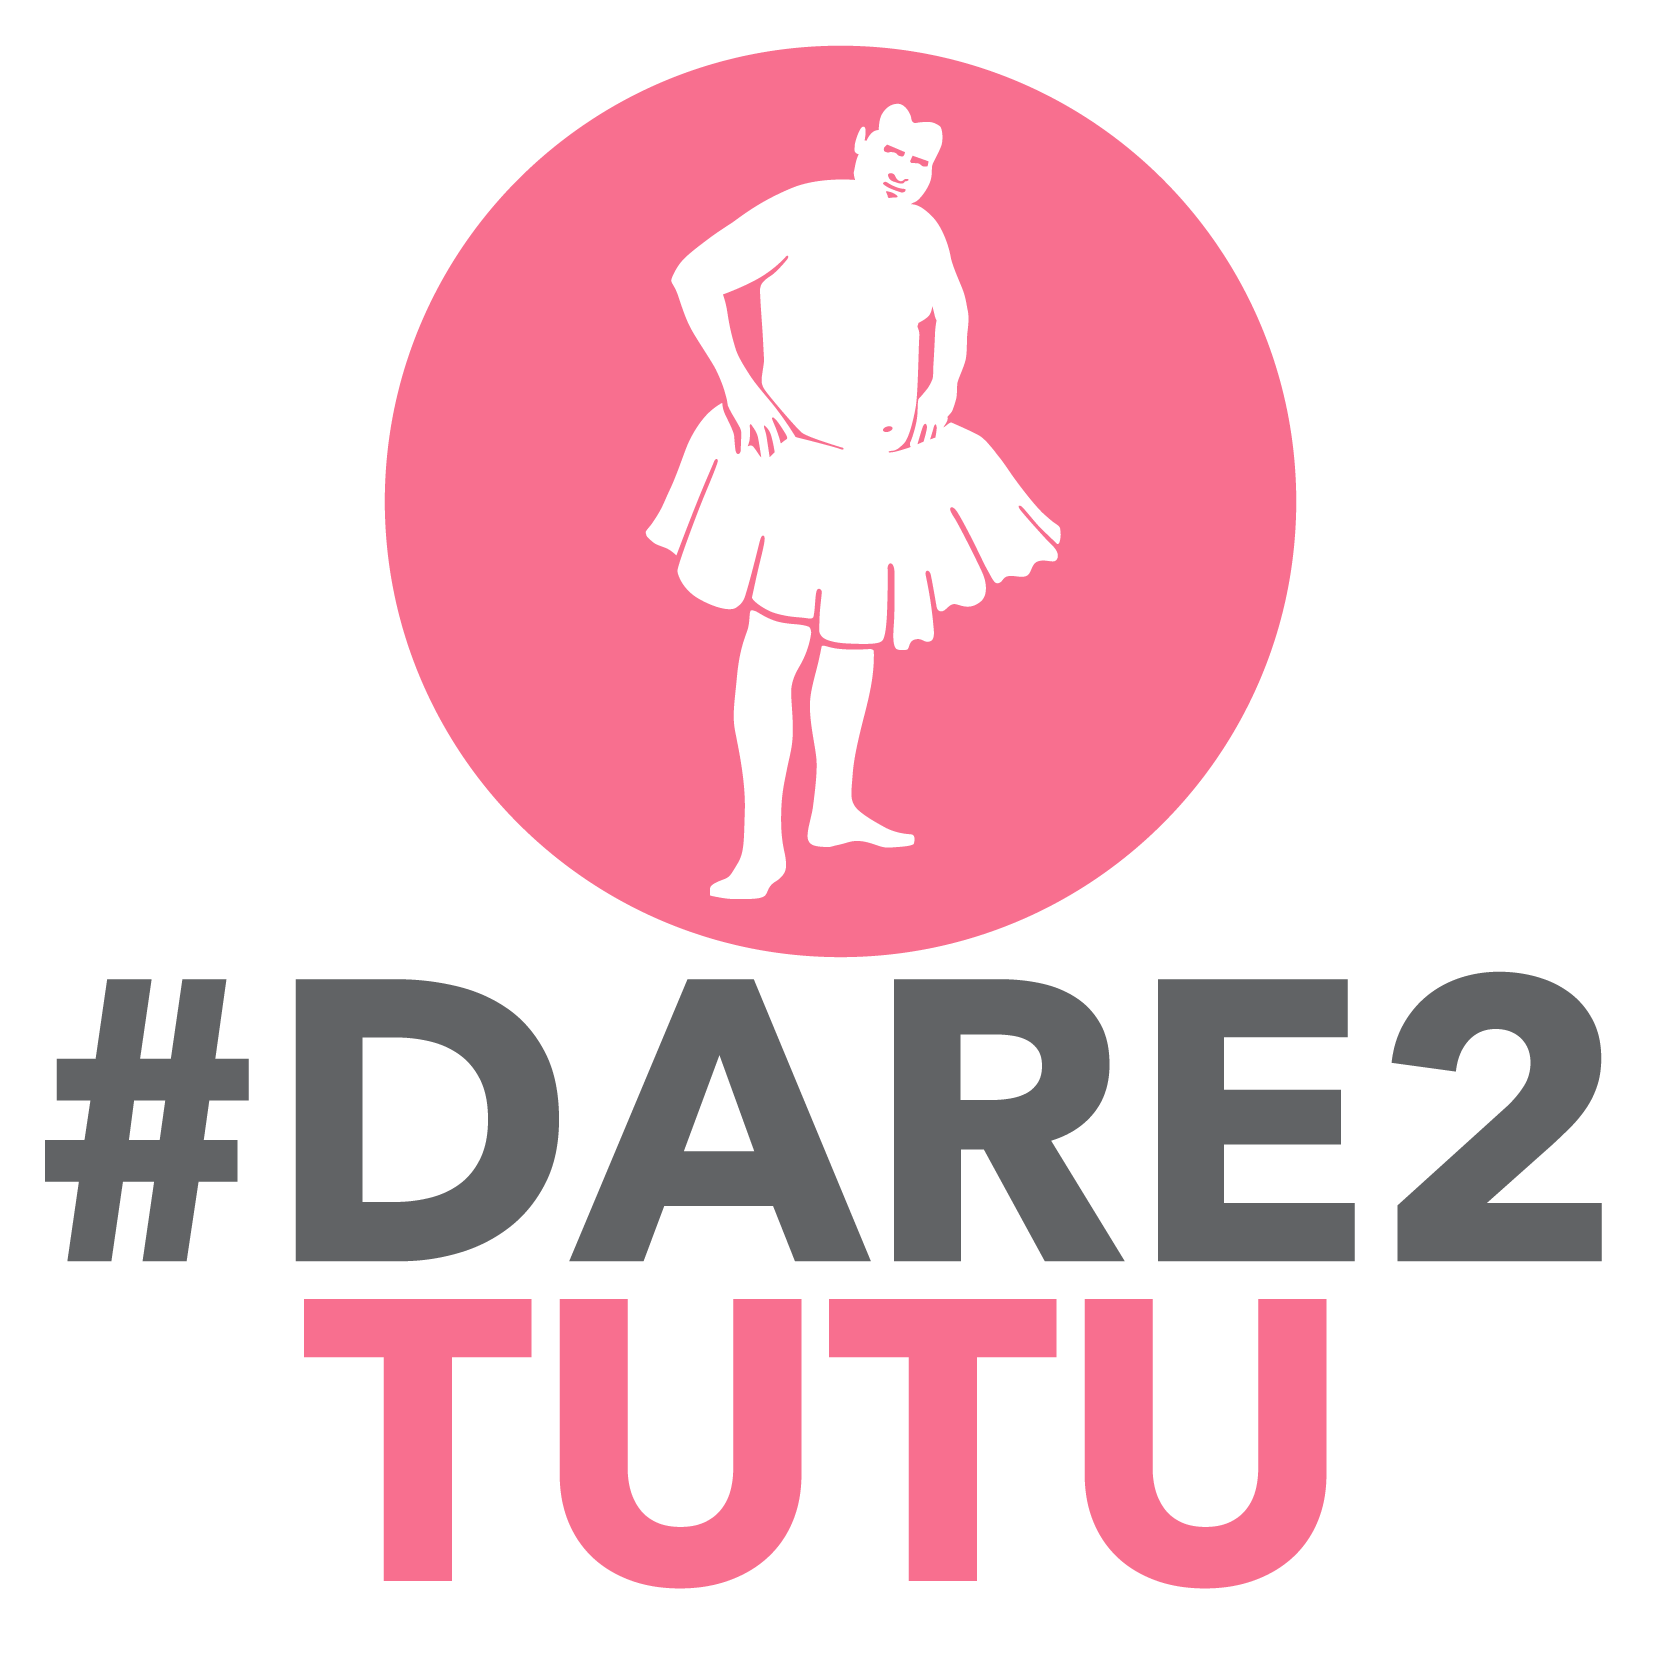 Dare2Tutu 2017 Annual Fundraiser for Breast Cancer Patients Photo